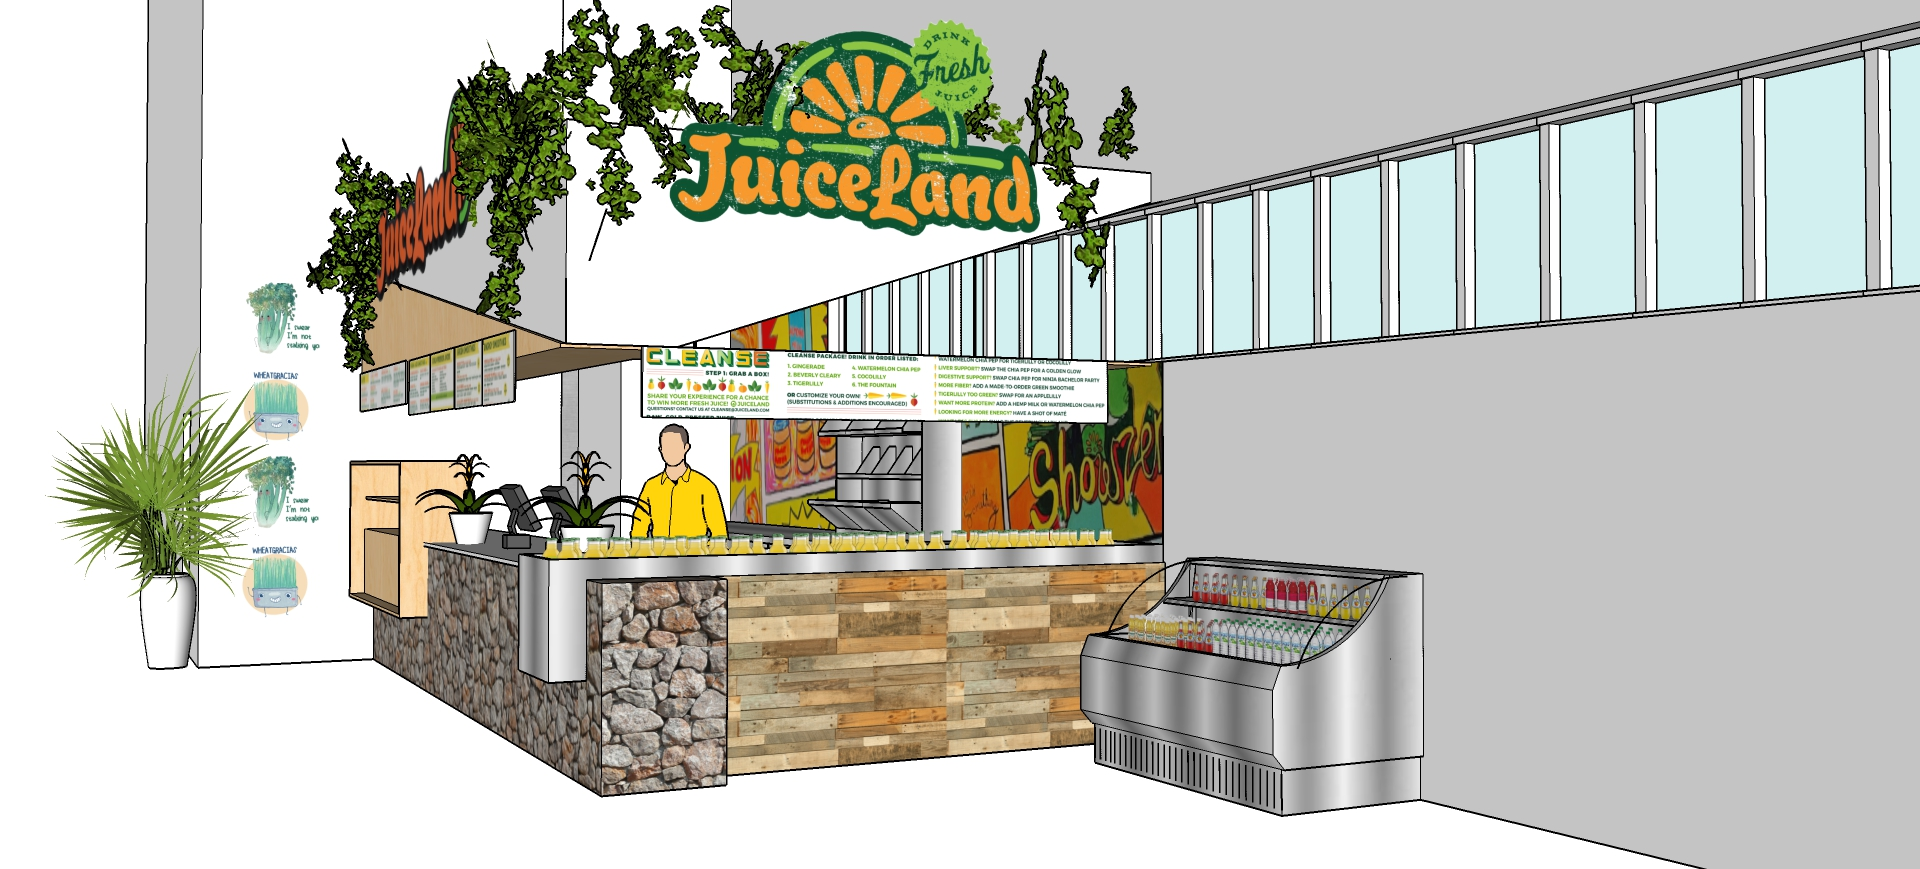 Easy Tiger and JuiceLand Team Up With Whole Foods' Affordable Cedar Park Store